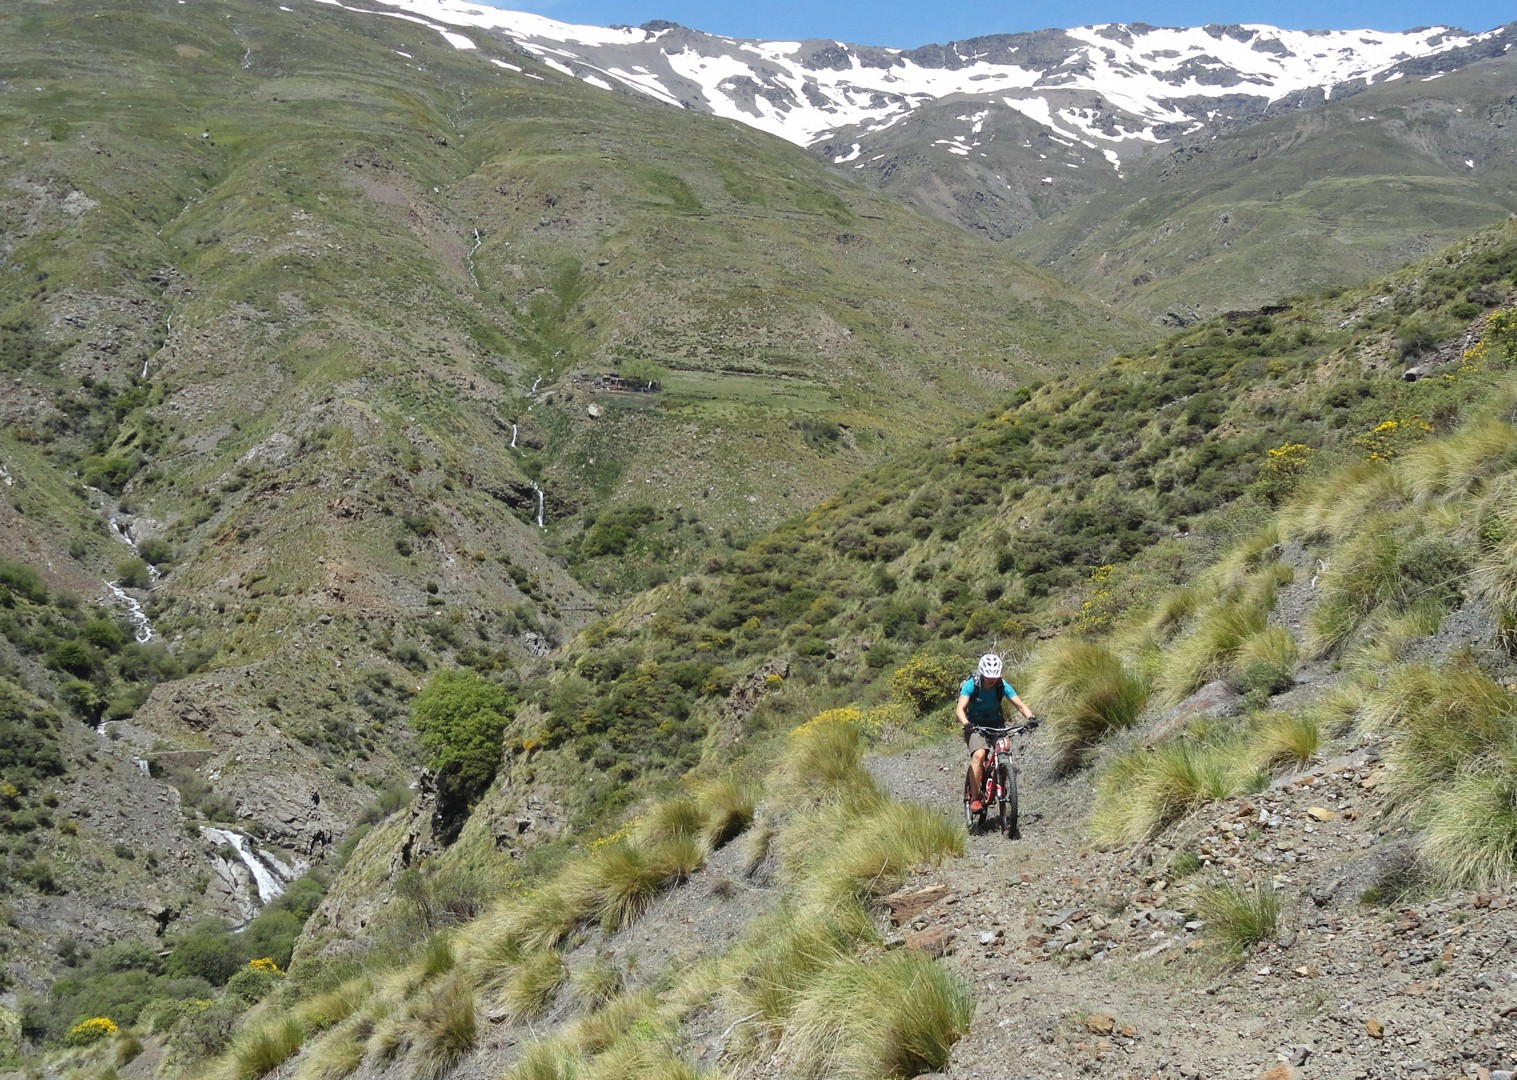 sierra-nevada-biking-in-spain-saddle-skedaddle.jpg - Spain - Sensational Sierra Nevada - Mountain Biking